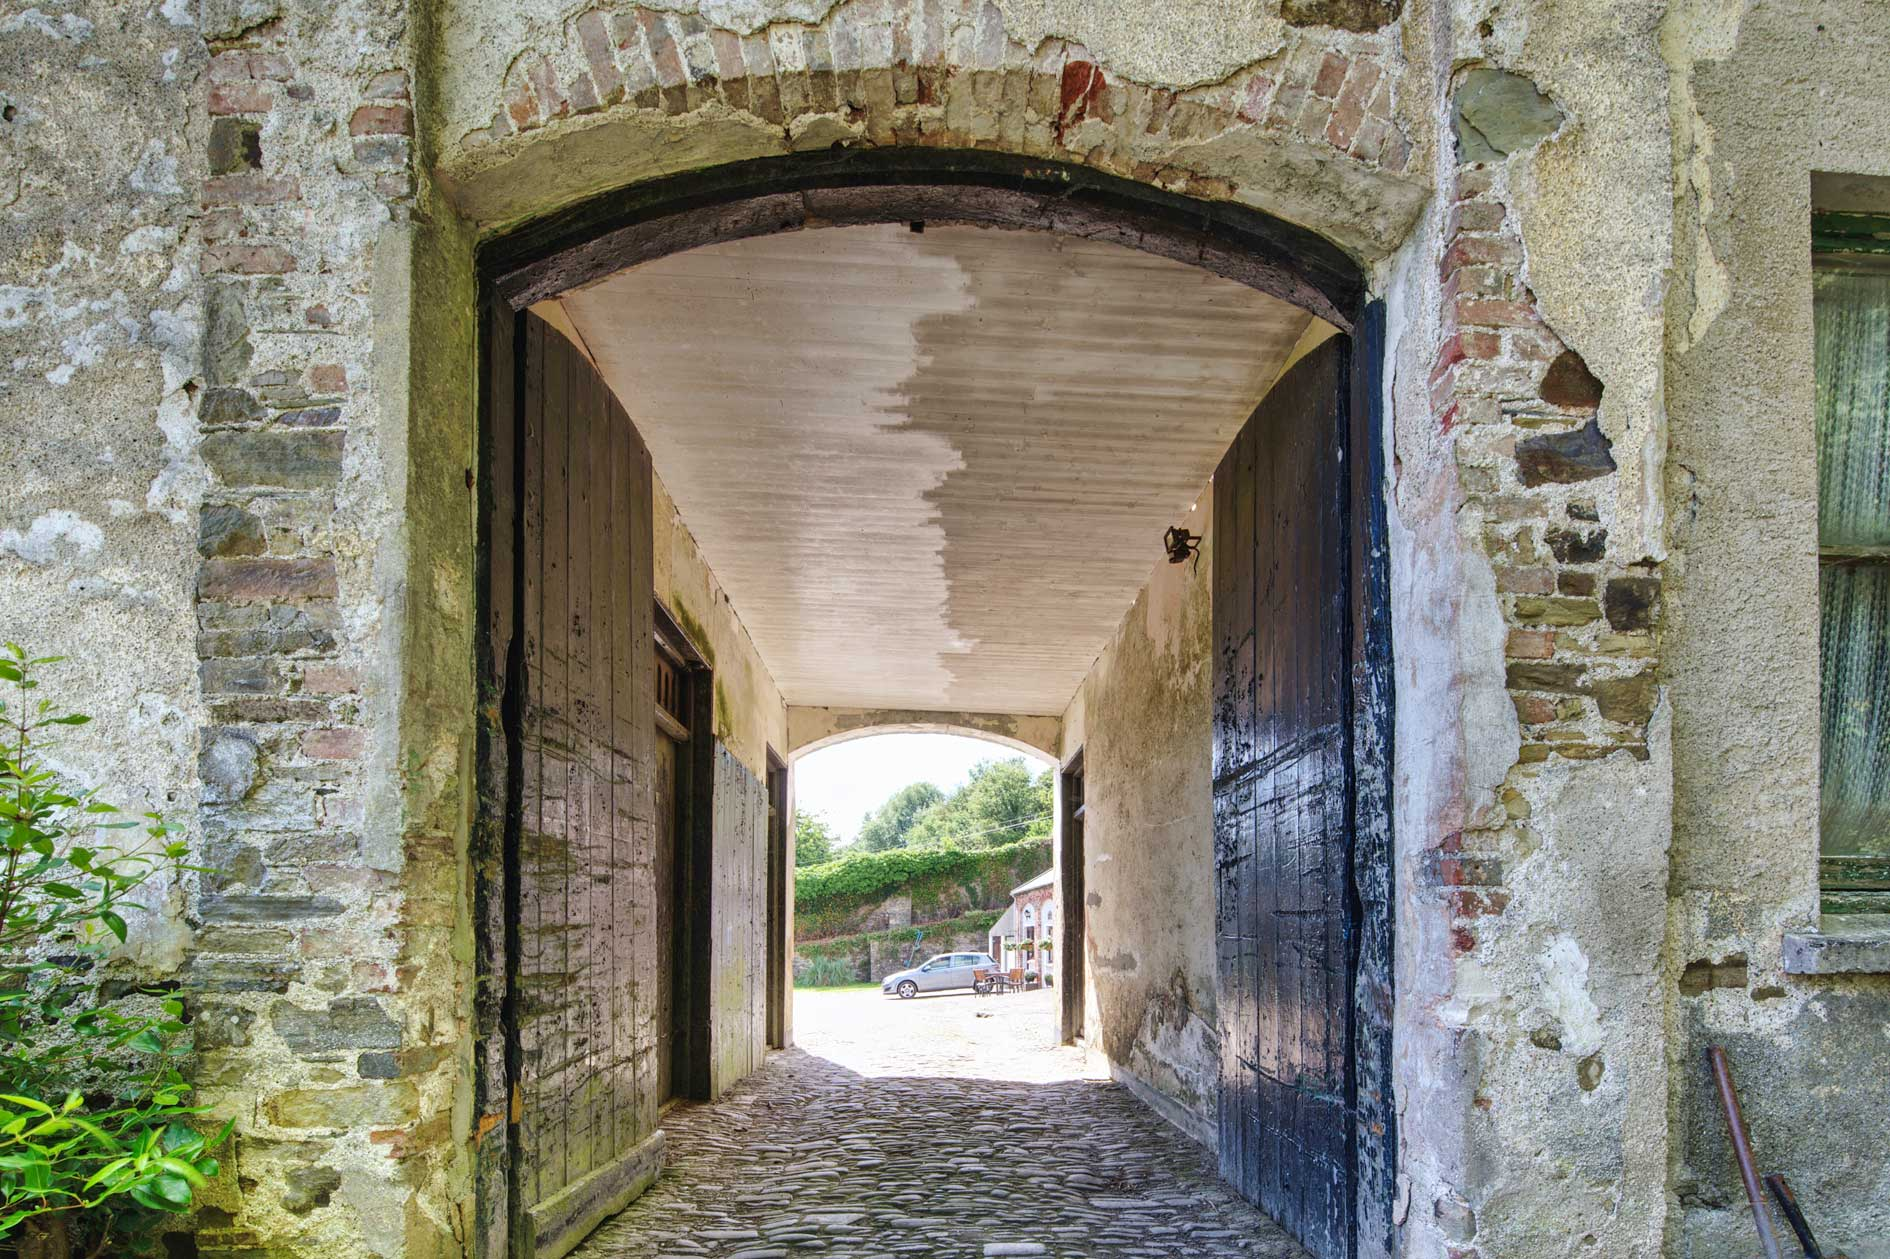 View Through Old Stone Arch With Dark Wooden Doors And Cobbled Floor